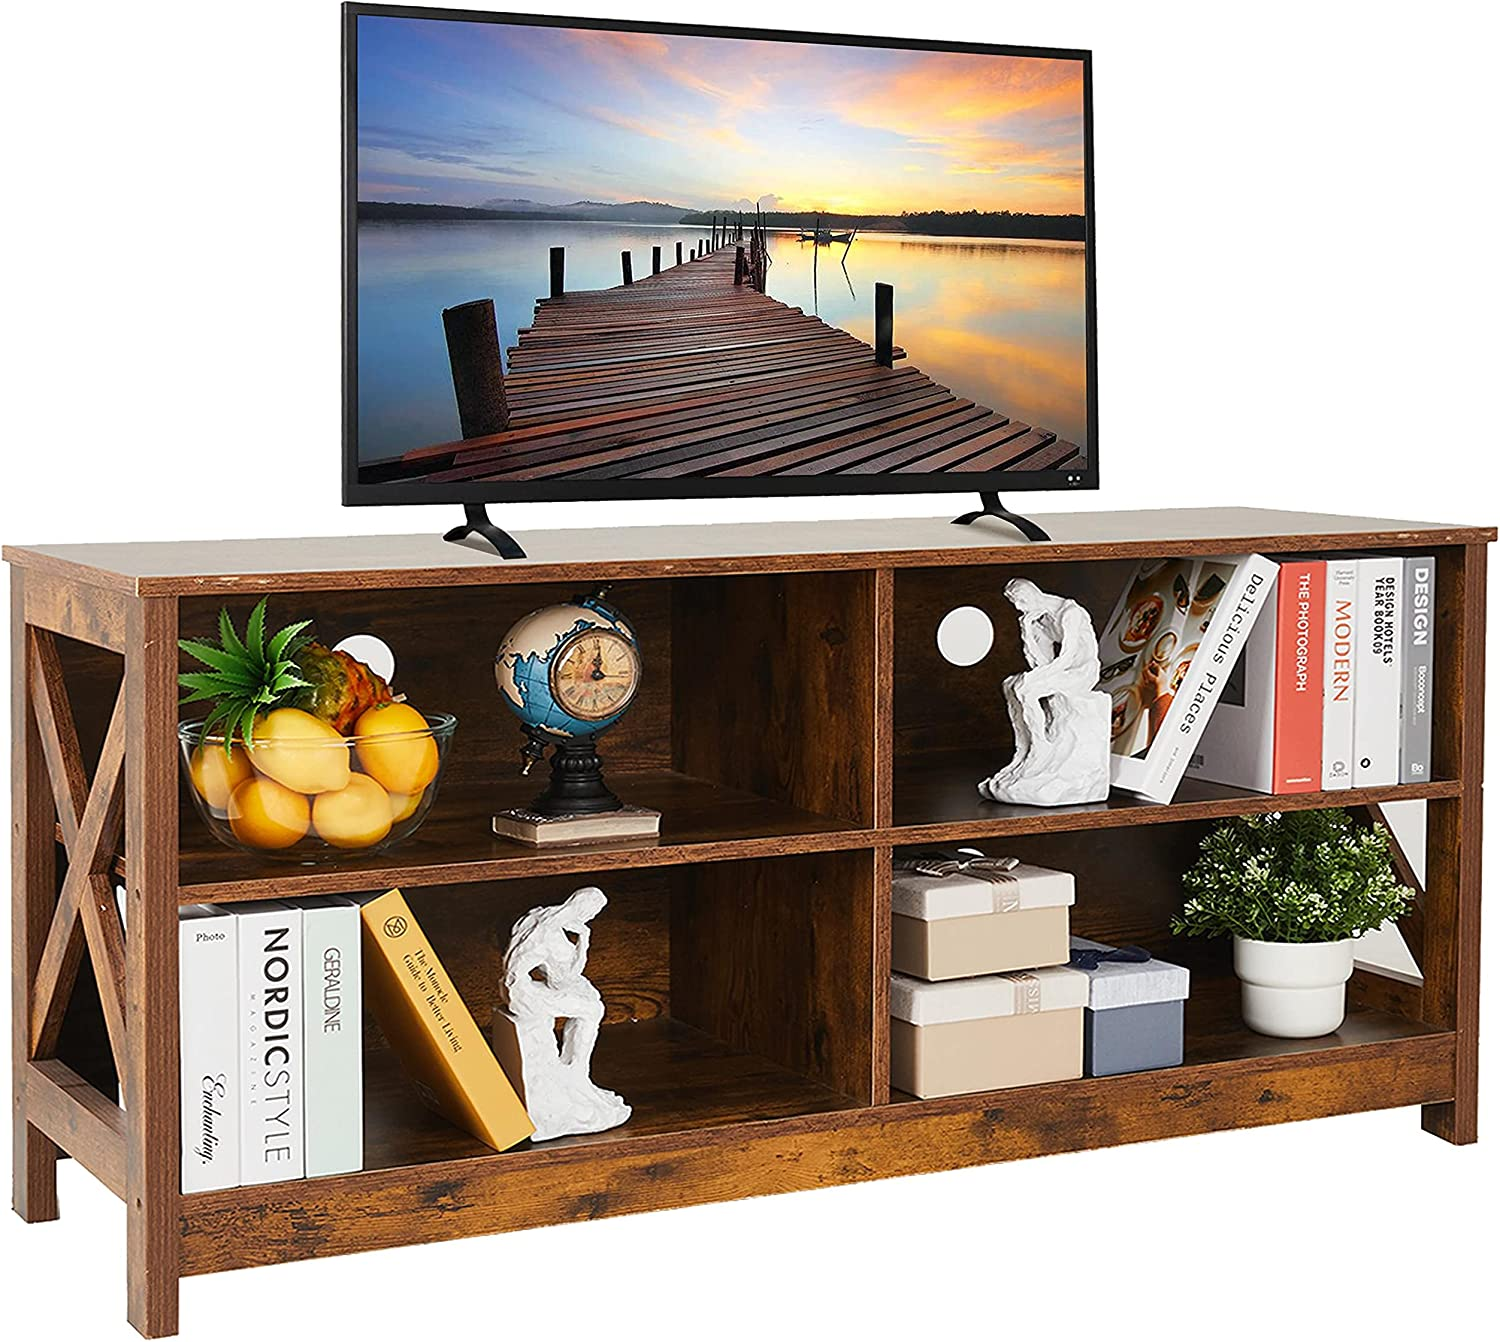 Saedew TV Stand for 55 Inch 50 Limited price sale Wood Entertainment Super beauty product restock quality top!